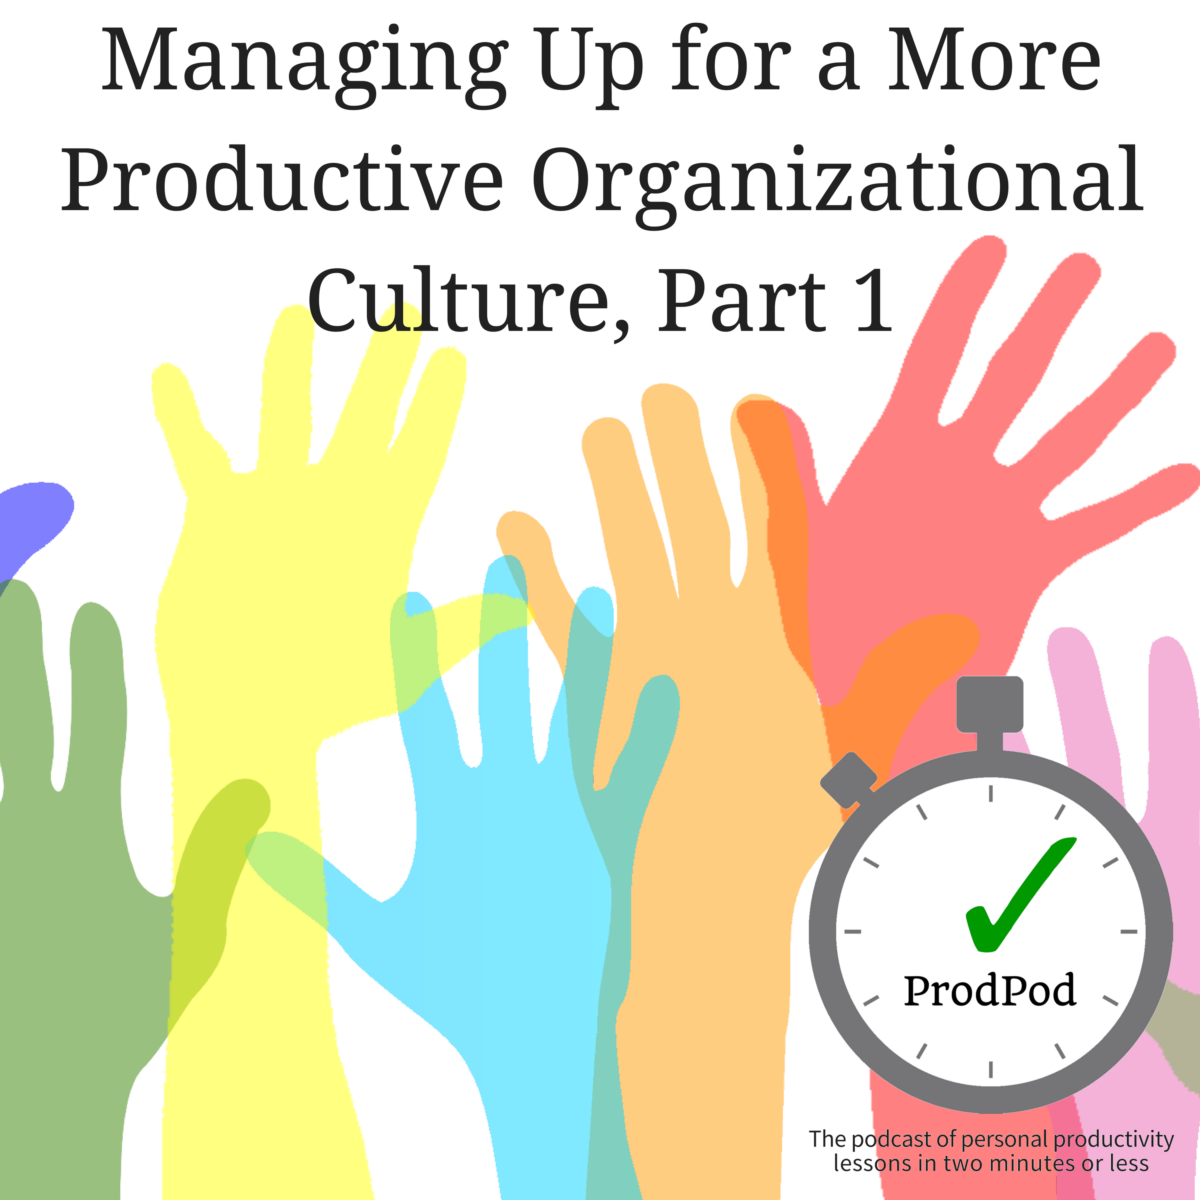 Managing Up for a More Productive Organizational Culture - Part 1 - ProdPod